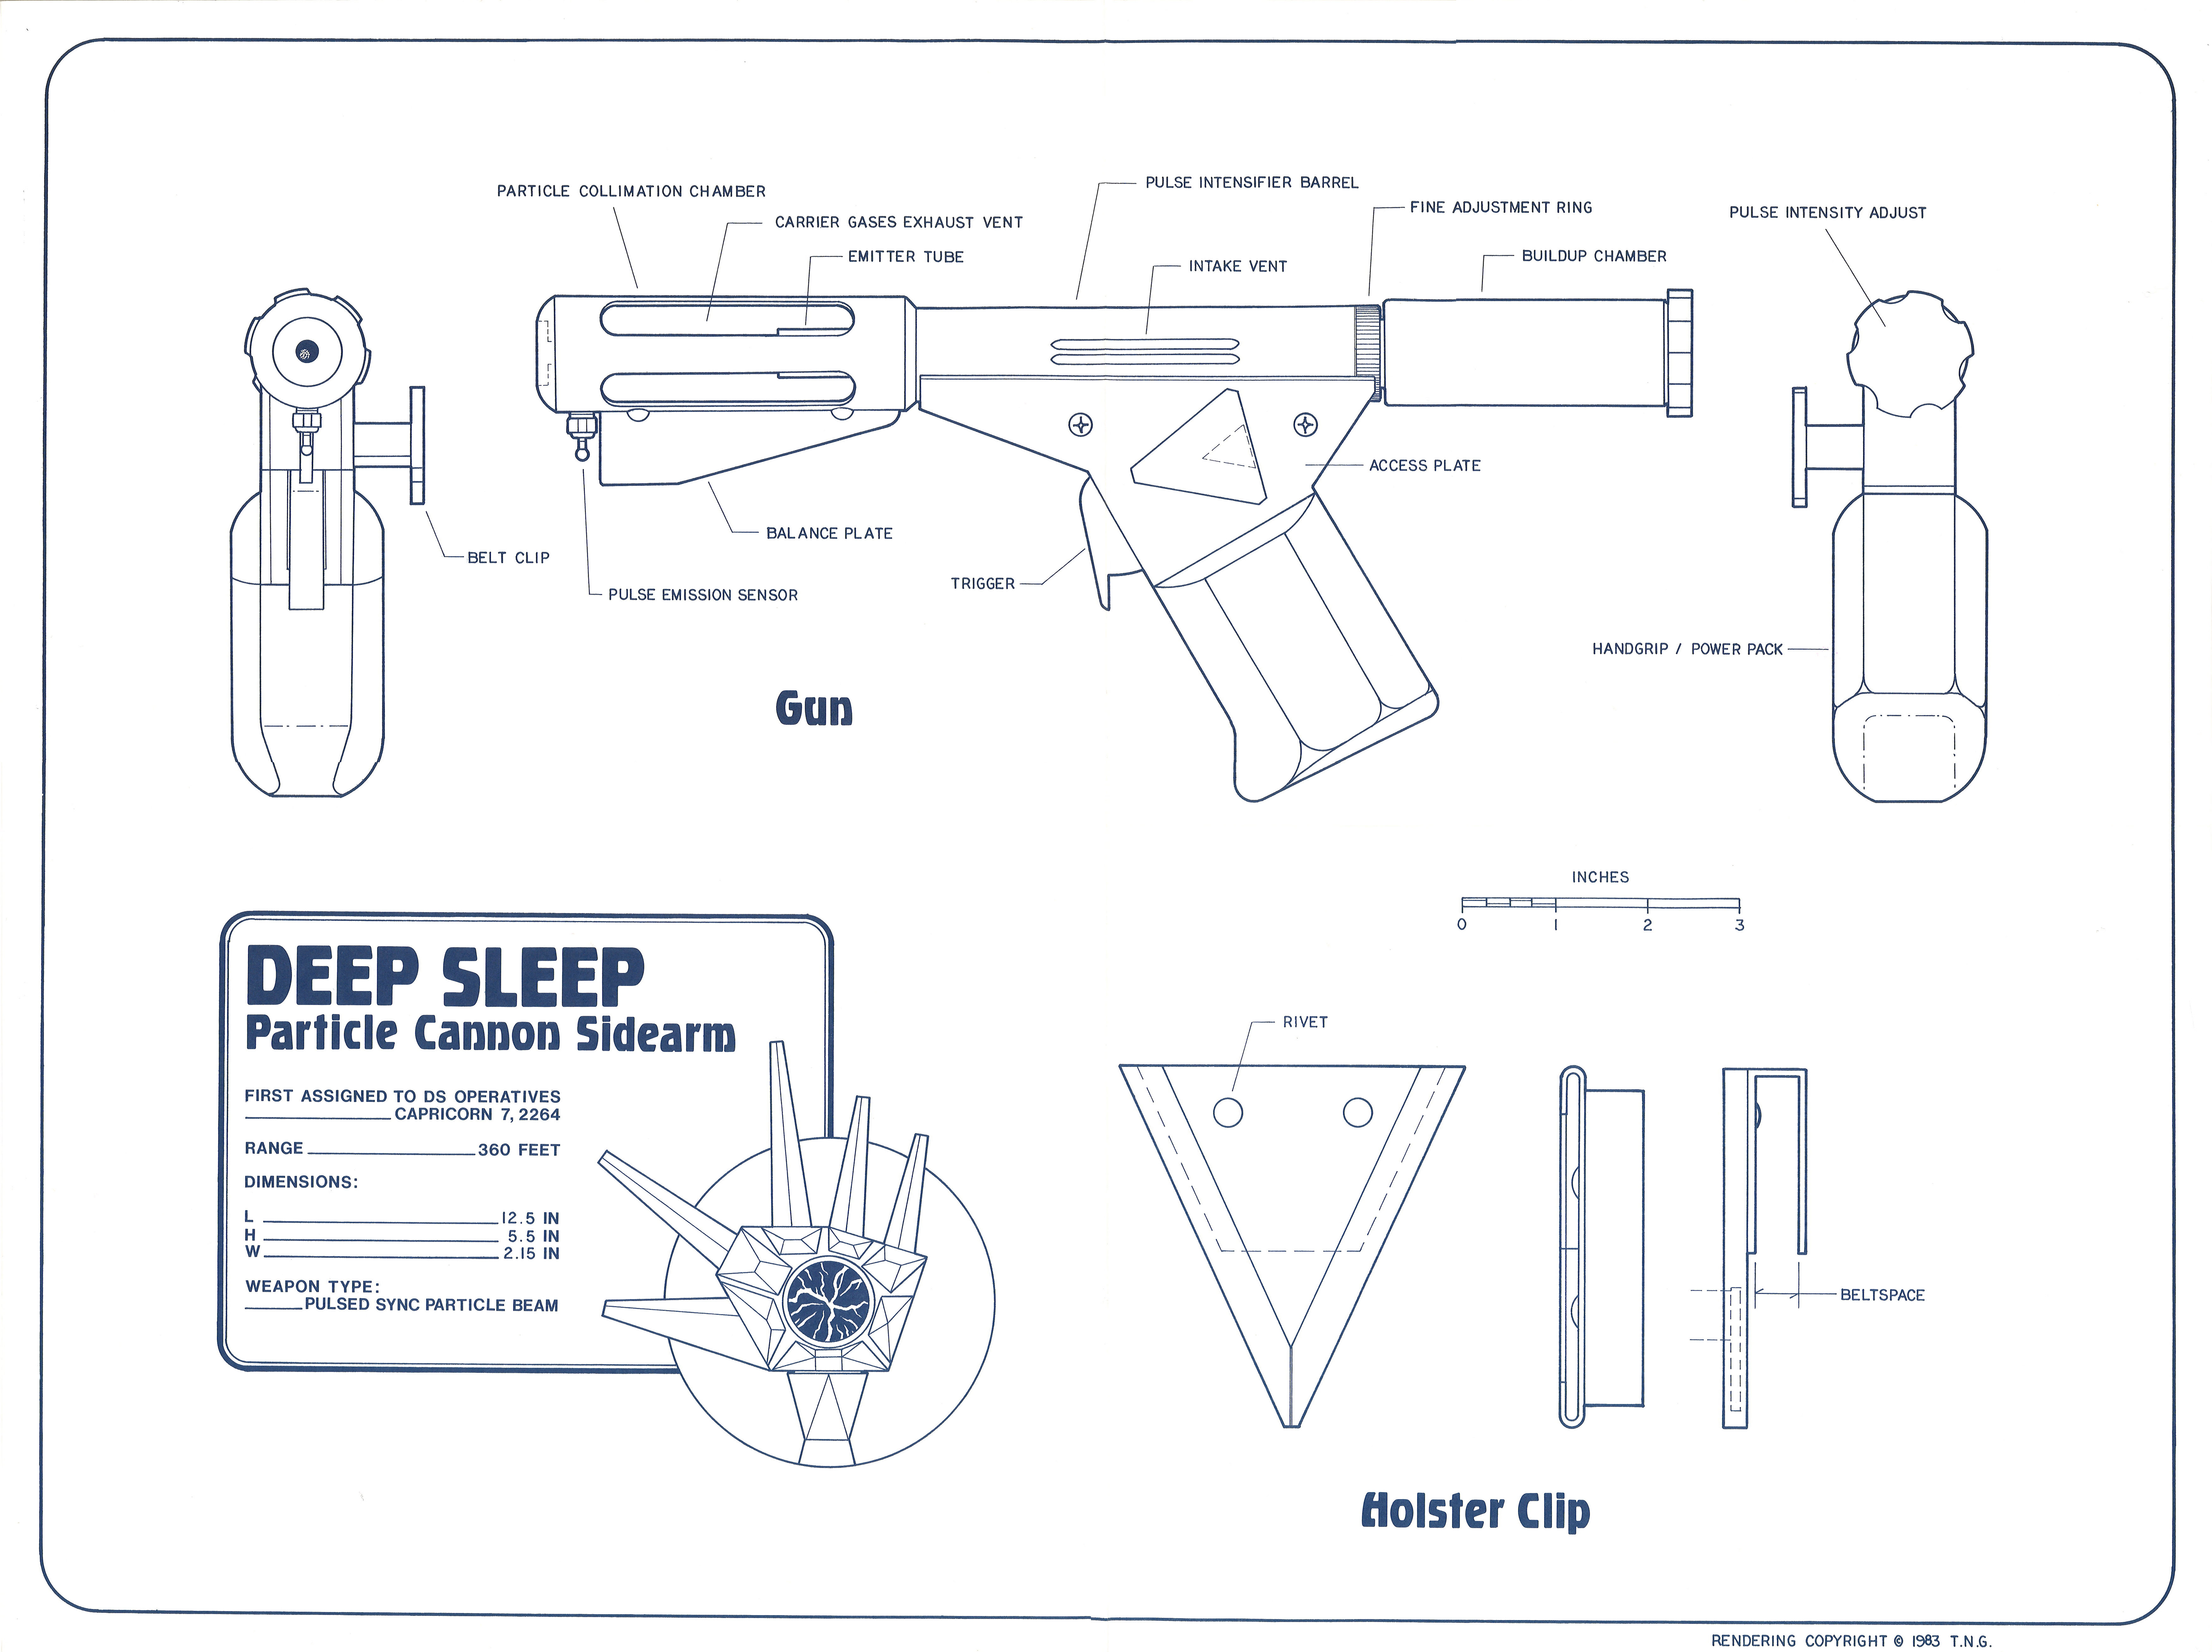 Star Trek Blueprints: Weapons and Field Equipt - 1